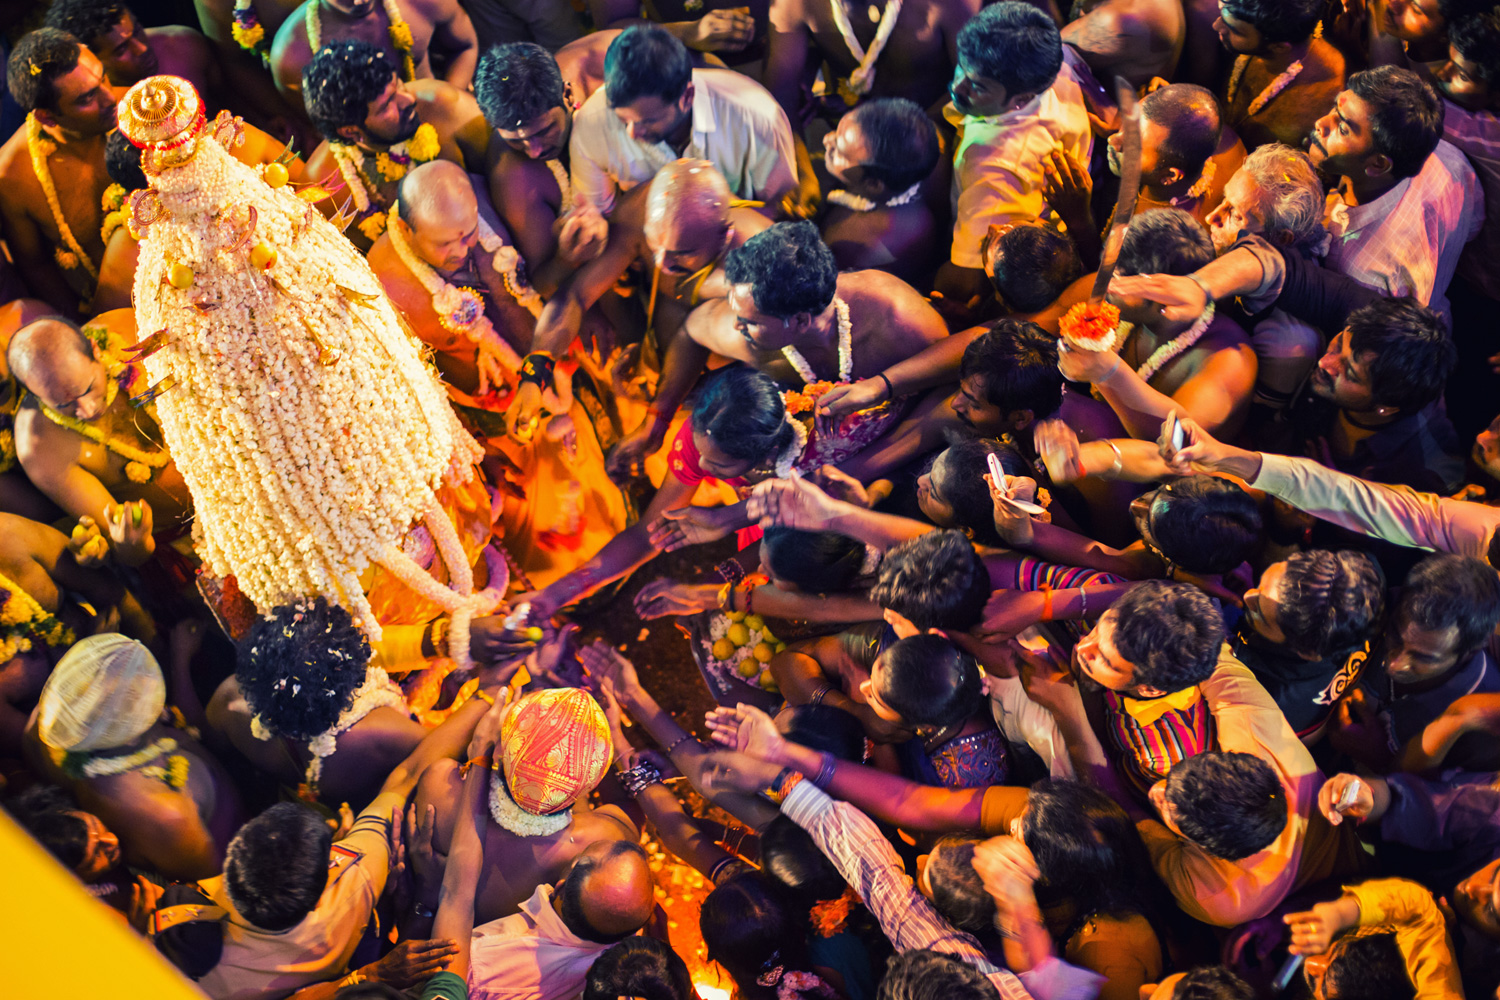 Considered extremely auspicious to receive a lemon from the hands of the Karaga bearer, there is always a mad scramble whenever the Karaga pauses momentarily to hand them out.